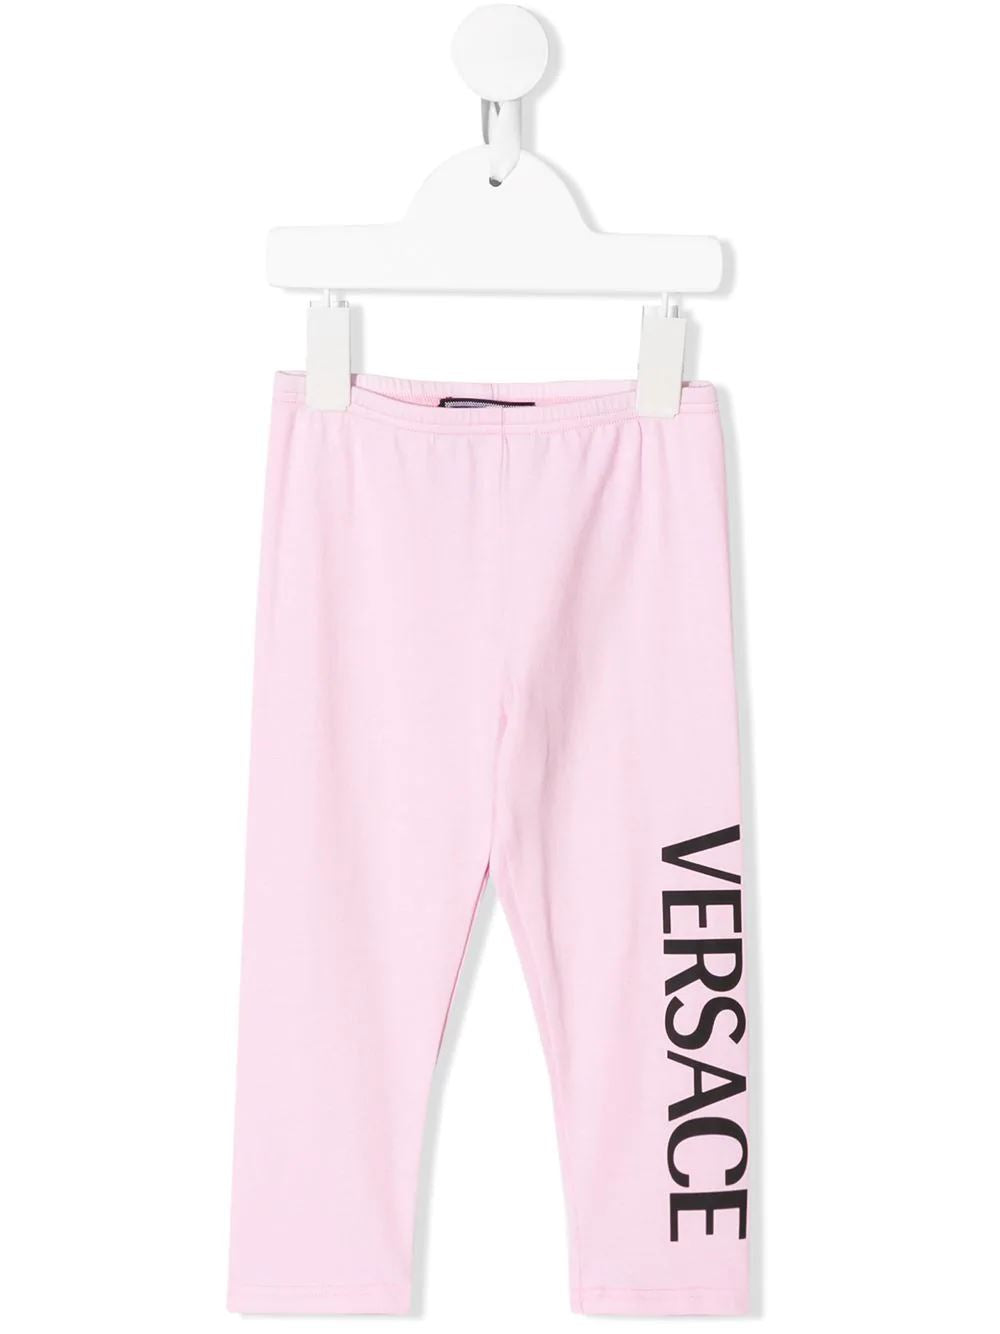 VERSACE Kids printed logo leggings - Maison De Fashion